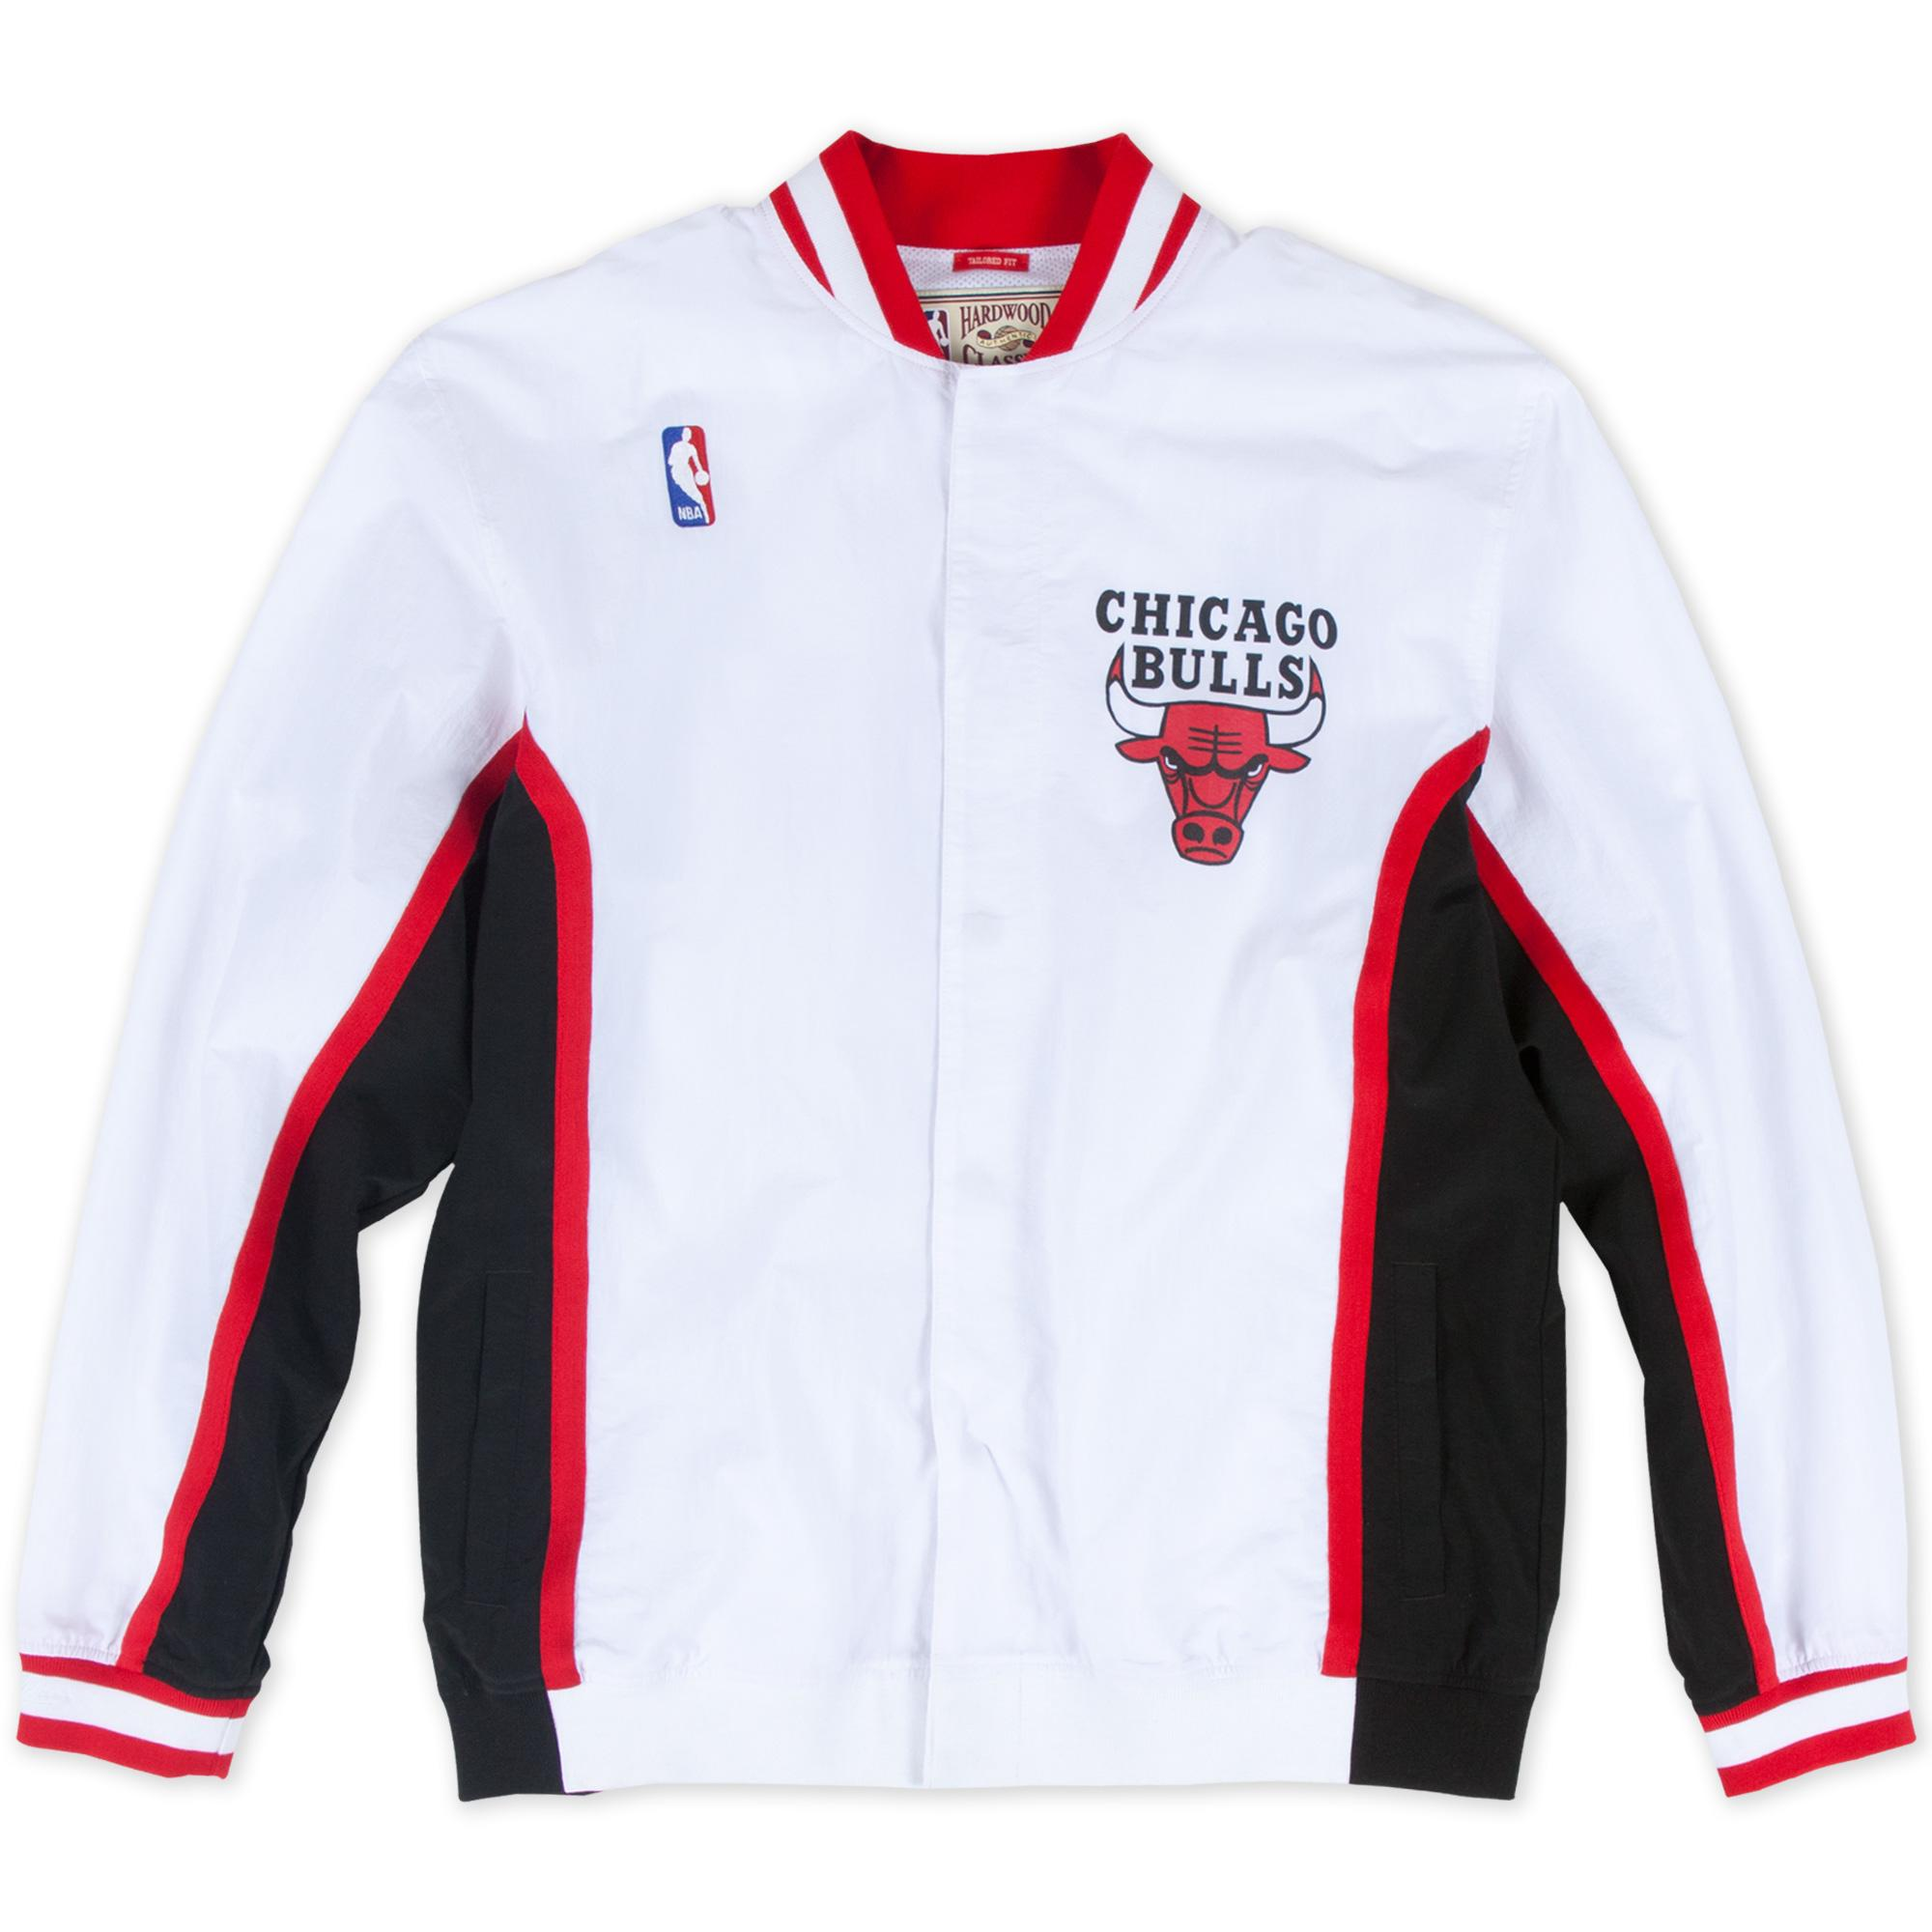 18a87ecb629 1992-93 Authentic Warm Up Jacket Chicago Bulls